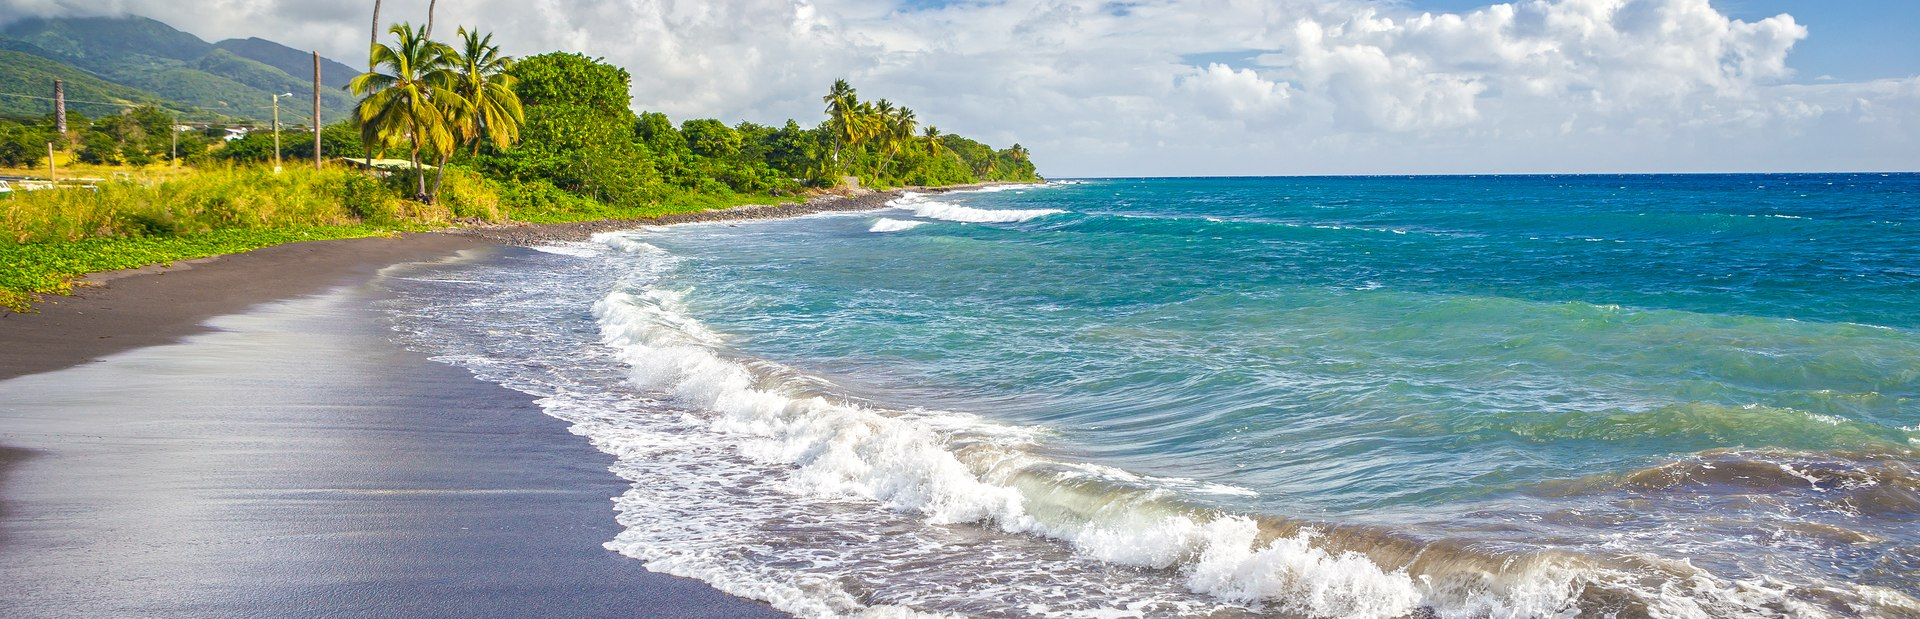 5 reasons to visit St Kitts and Nevis on a luxury yacht charter